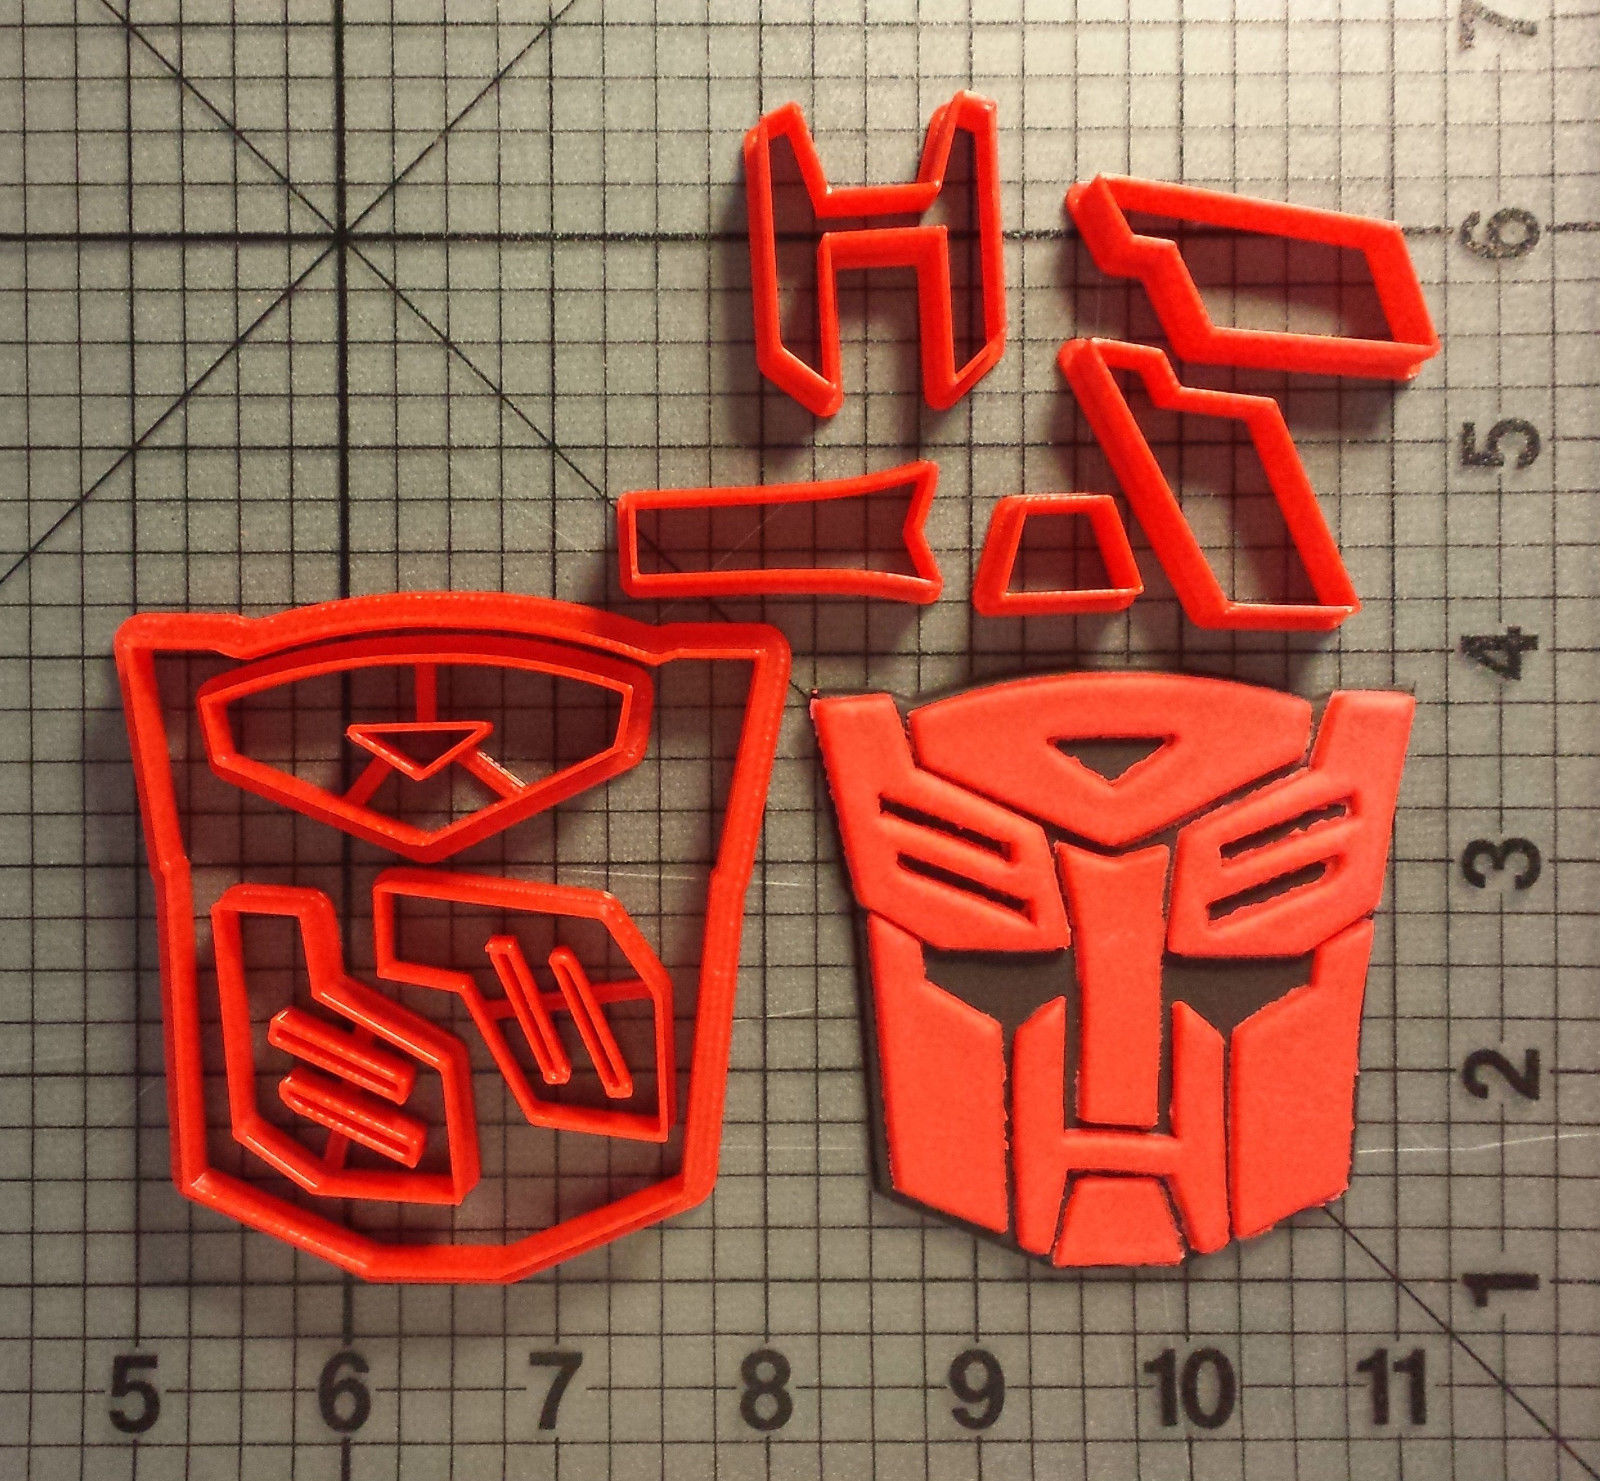 Primary image for Toy 114 Cookie Cutter Set